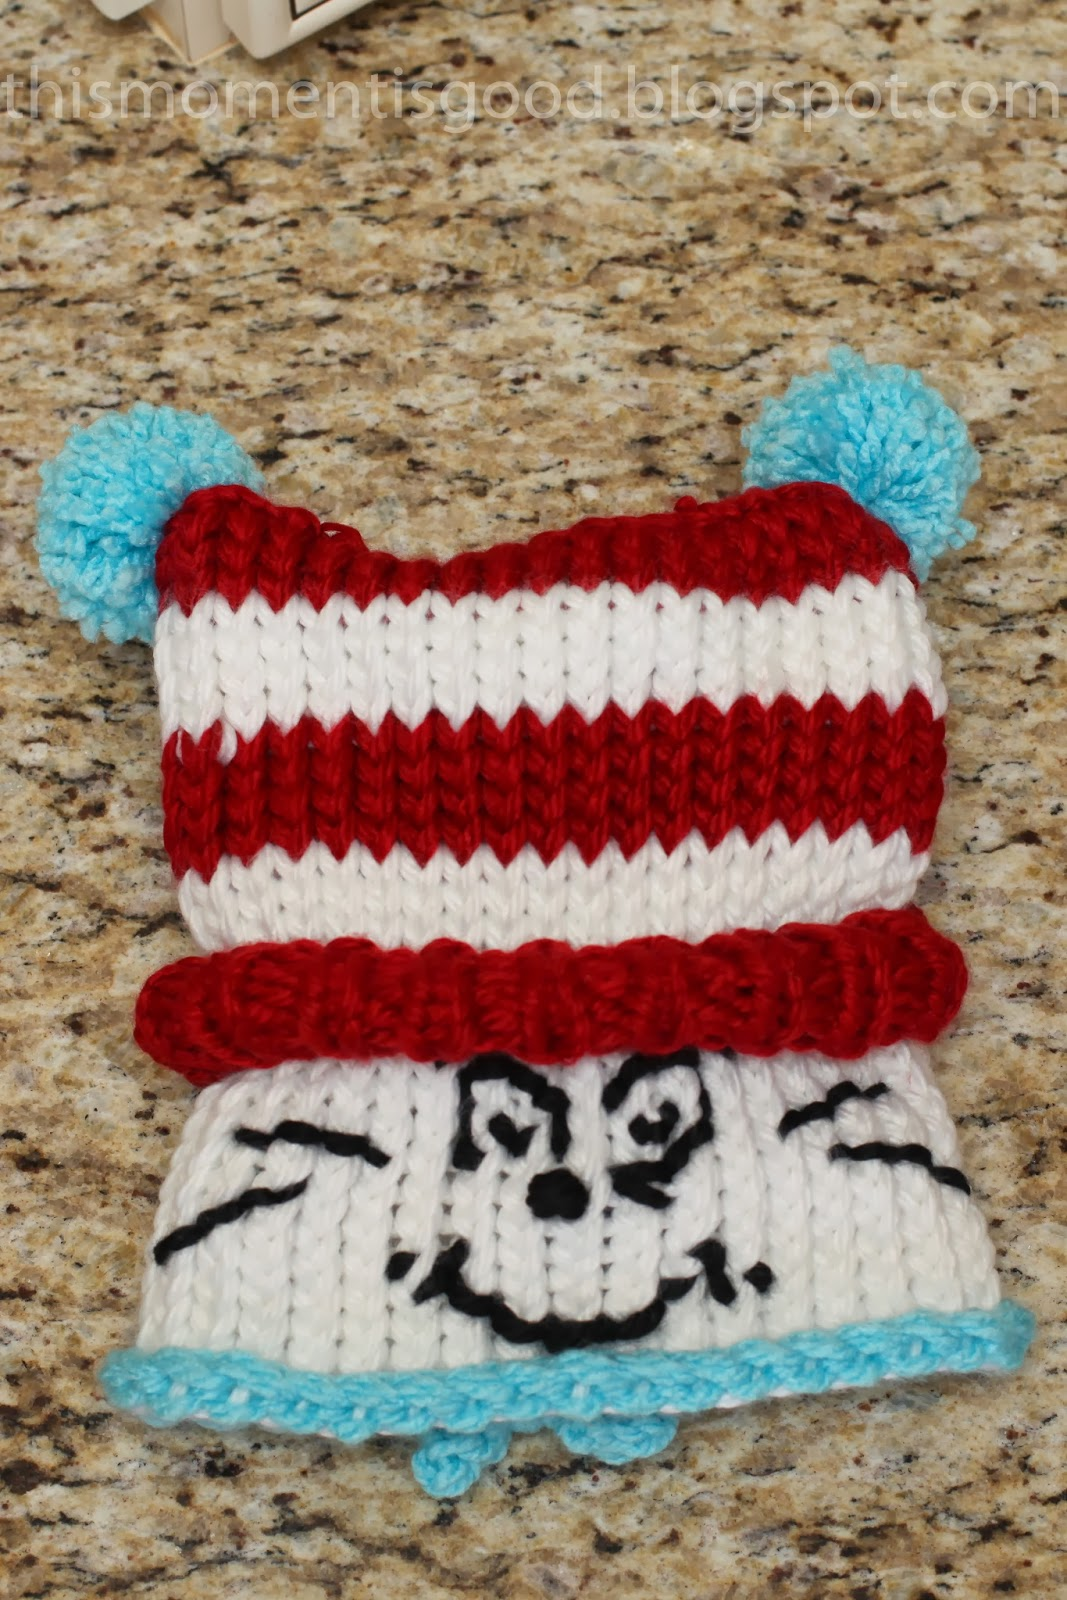 Loom Knitting by This Moment is Good!: LOOM KNIT DR SEUSS HAT